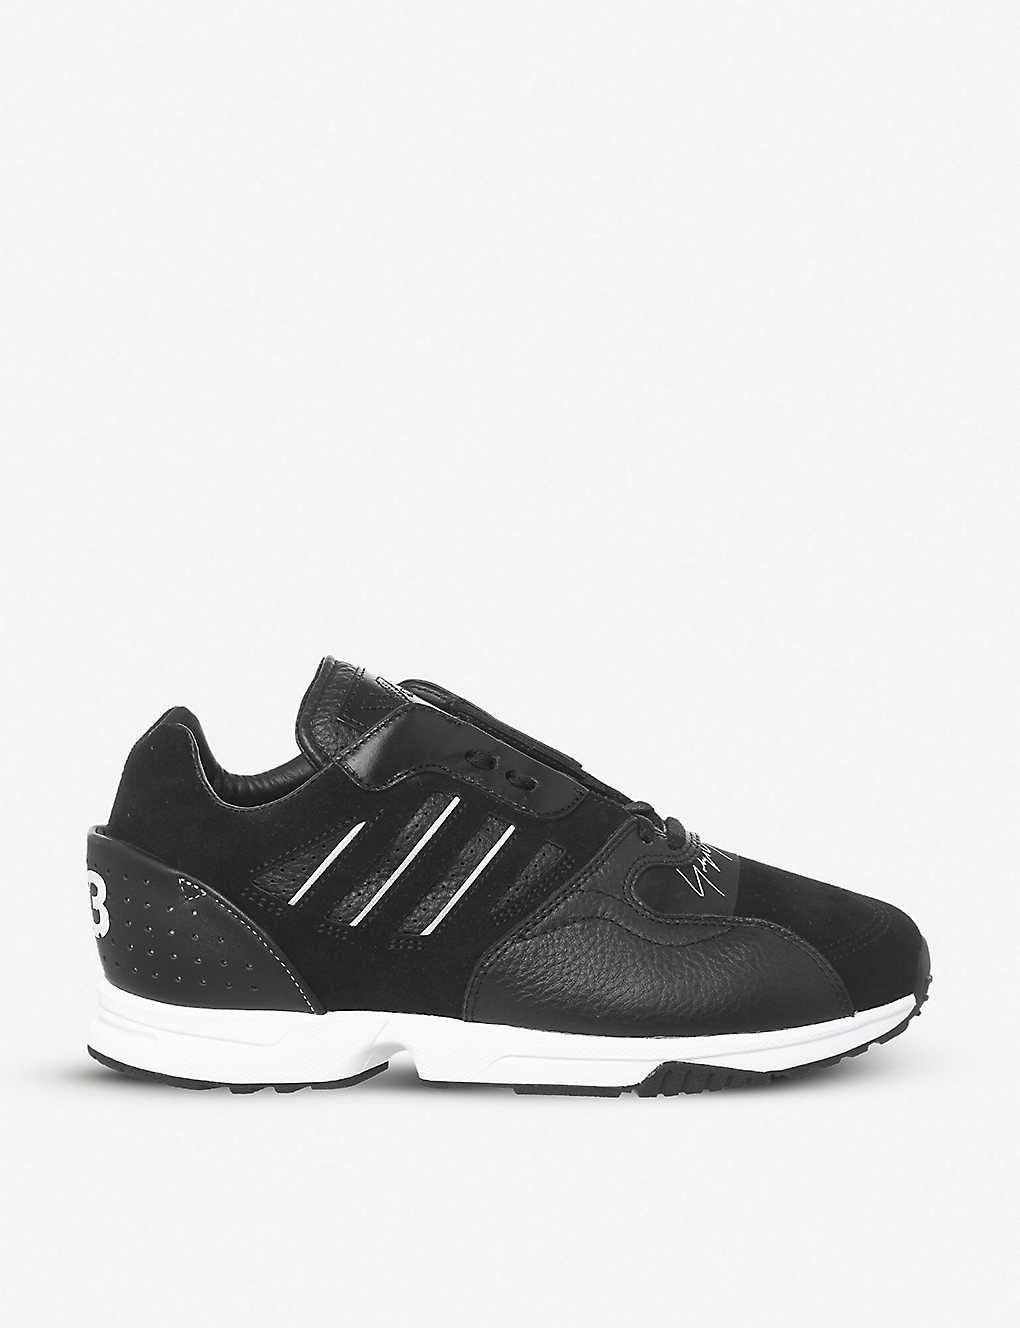 6dcad484a Zx Run leather and suede trainers - Black white ...